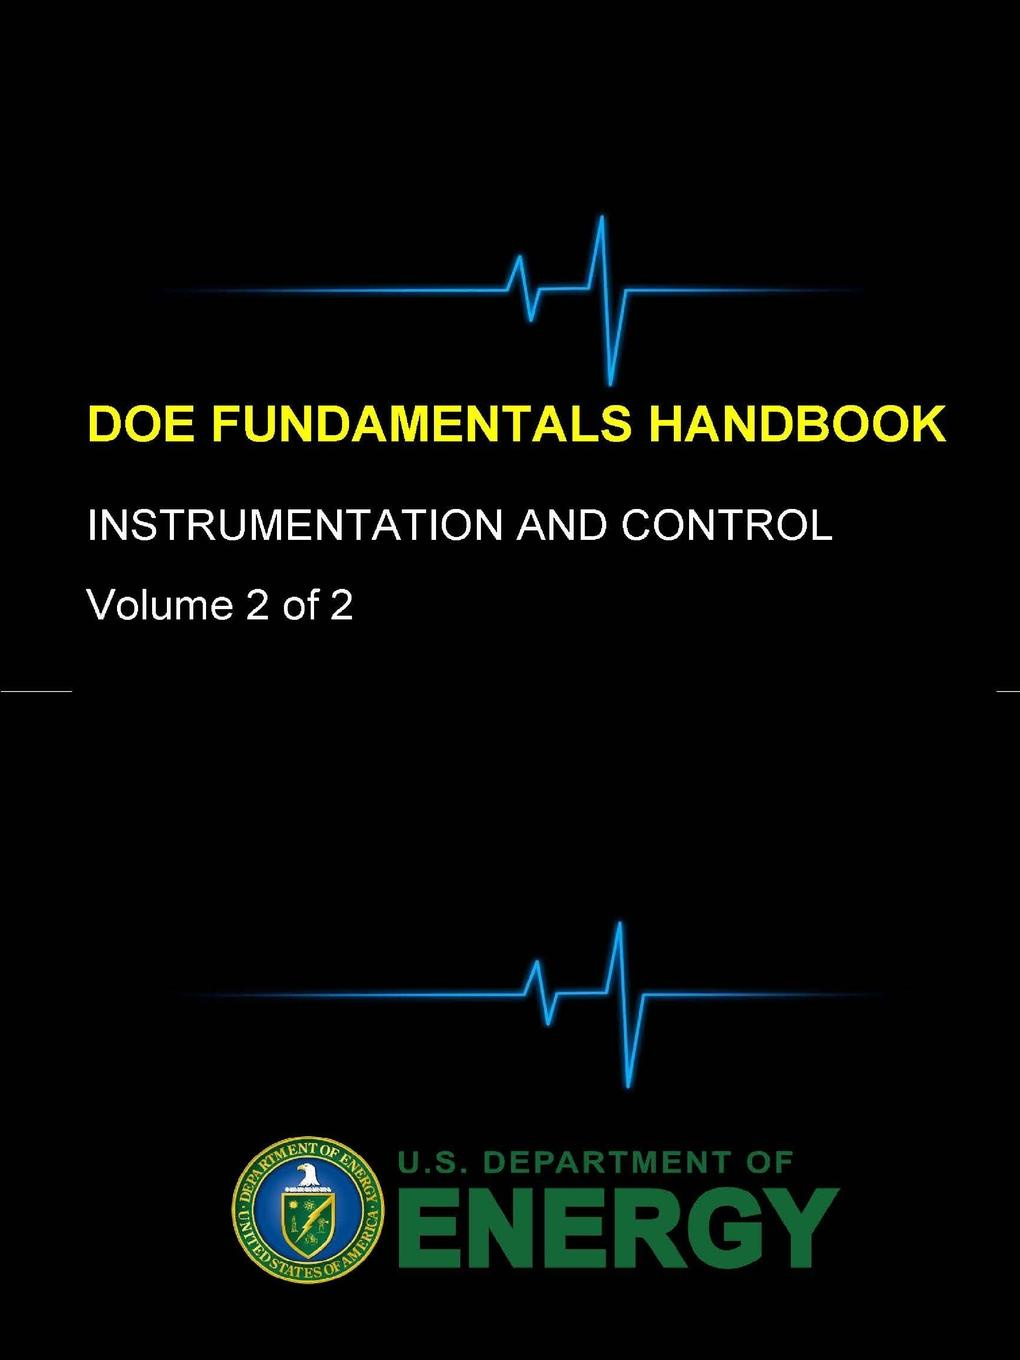 U.S. Department of Energy DOE Fundamentals Handbook - Instrumentation and Control (Volume 2 of 2) myer kutz mechanical engineers handbook volume 2 design instrumentation and controls